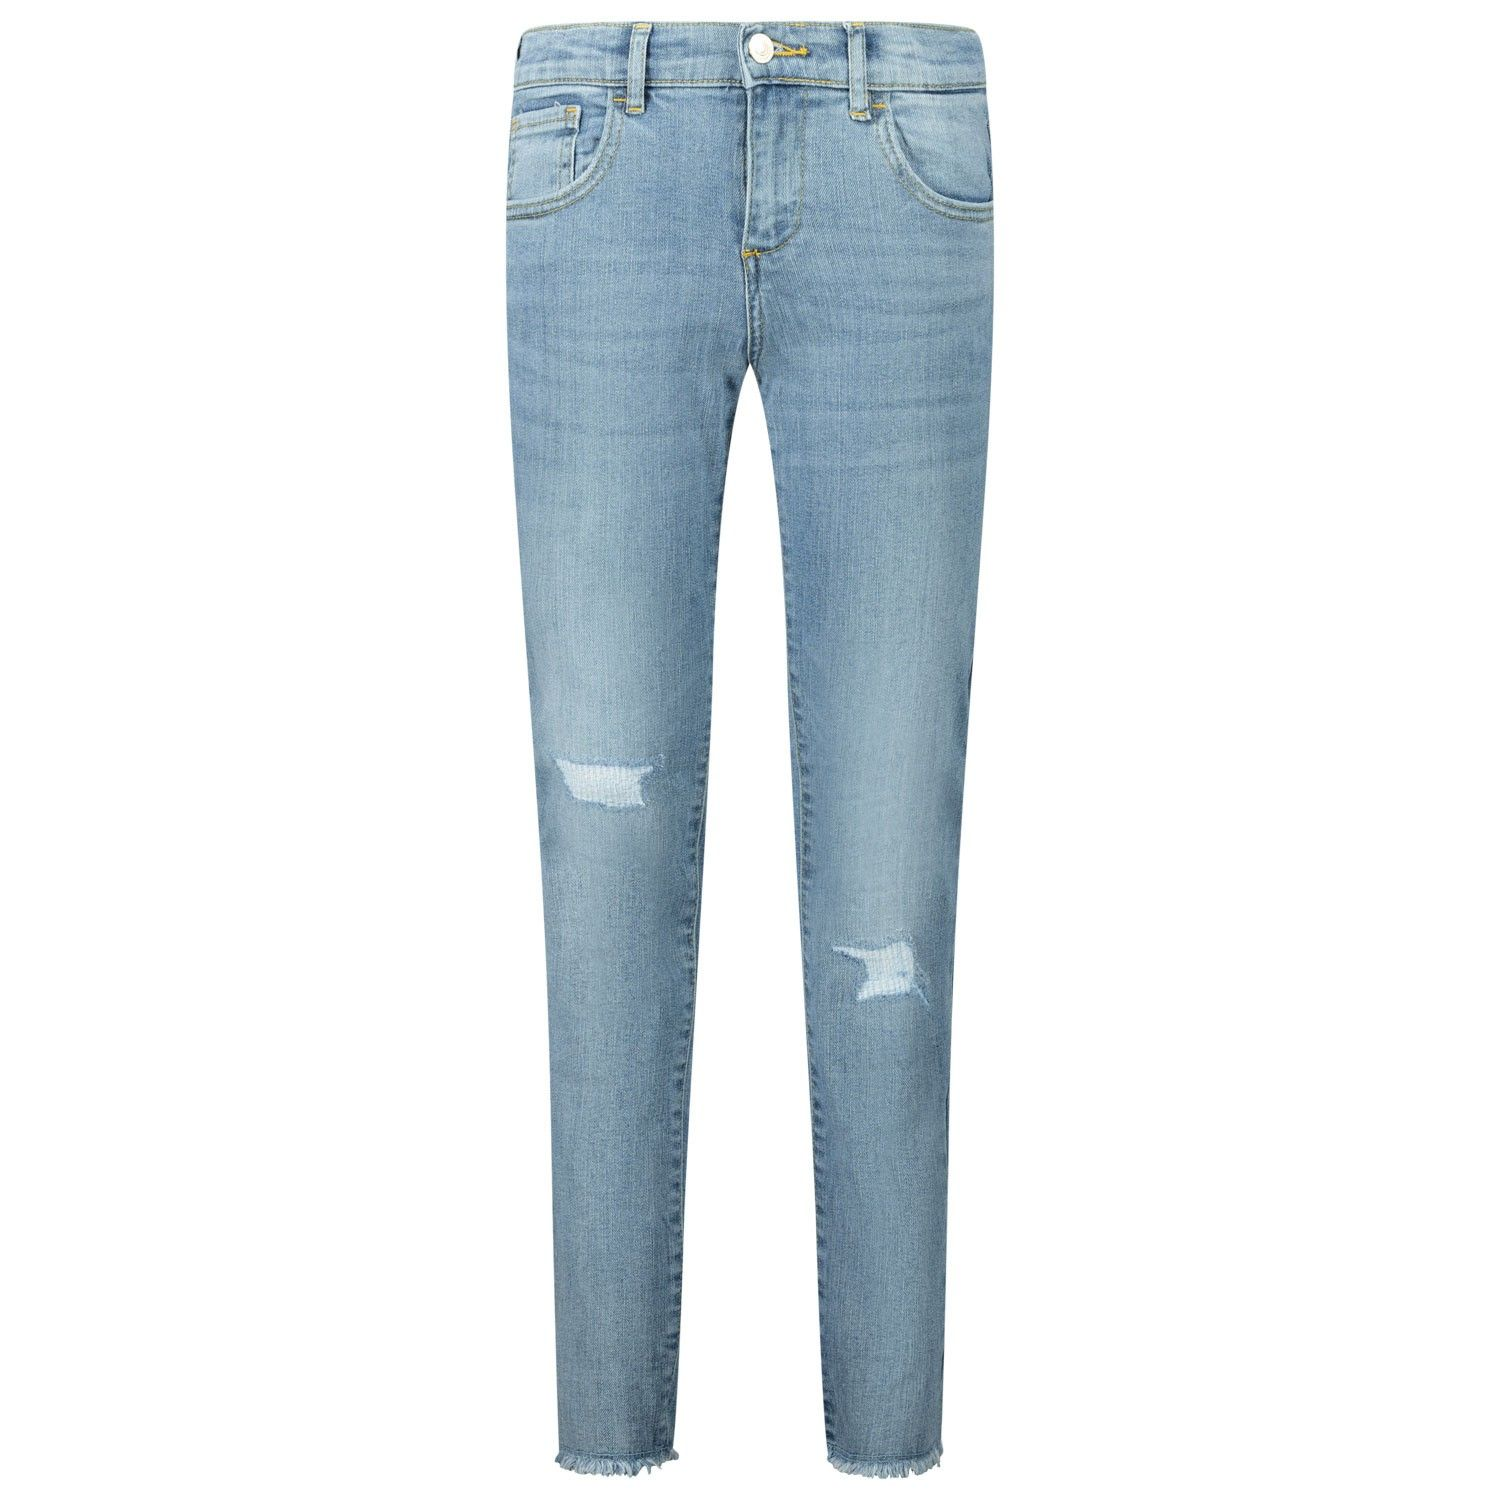 Picture of Guess J01A06 kids jeans jeans